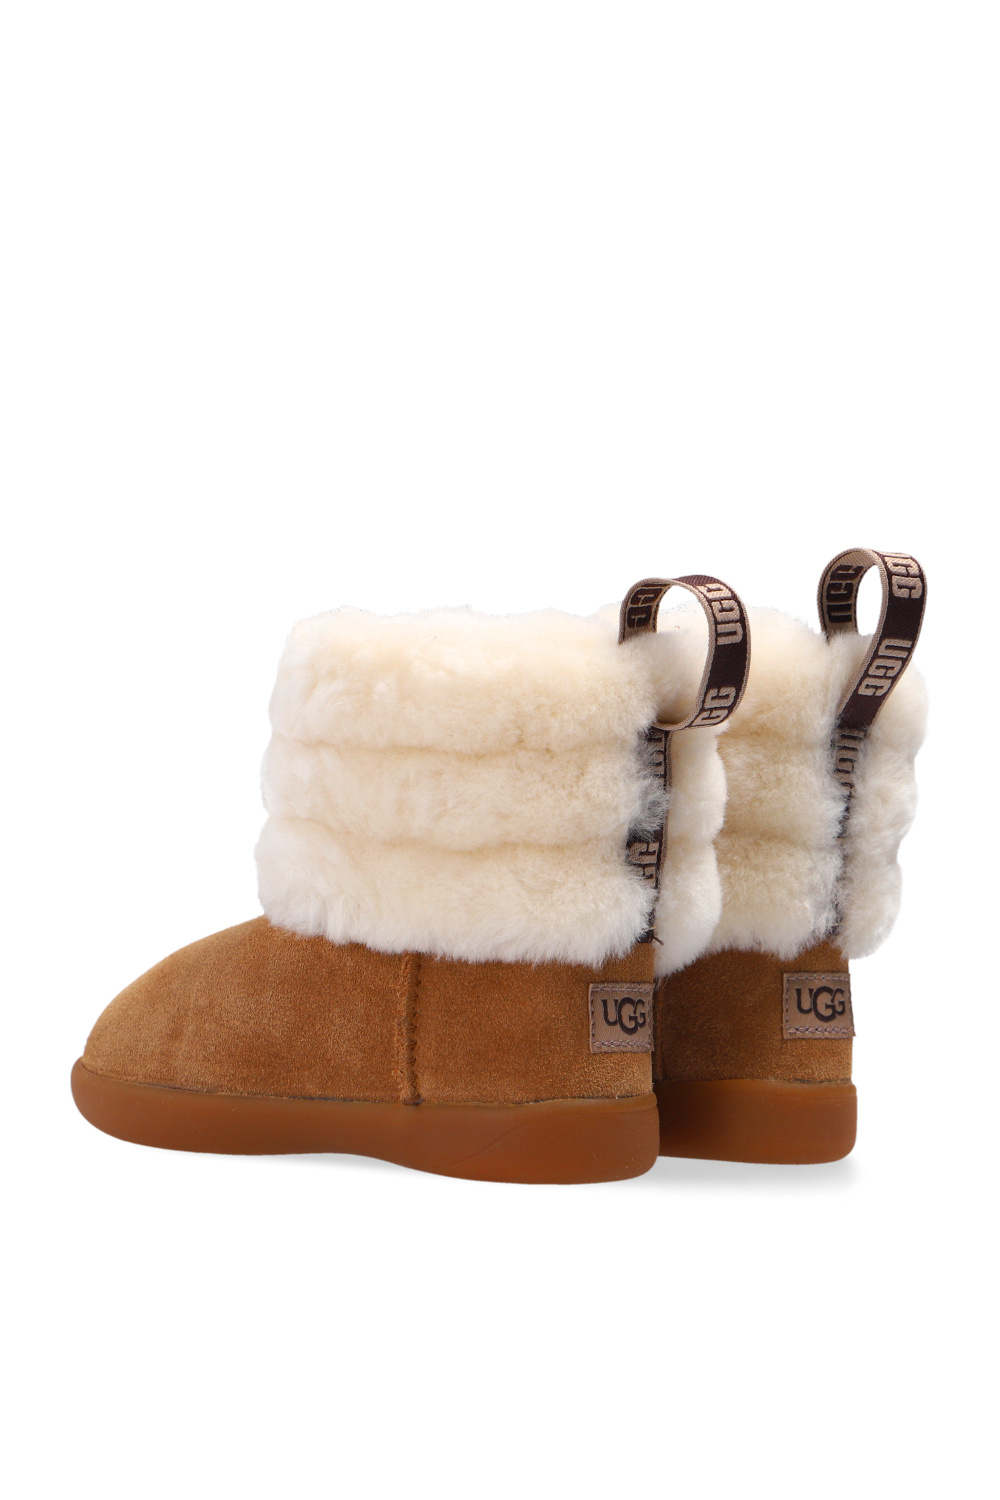 UGG Kids 'Mini Quilted Fluff' snow boots